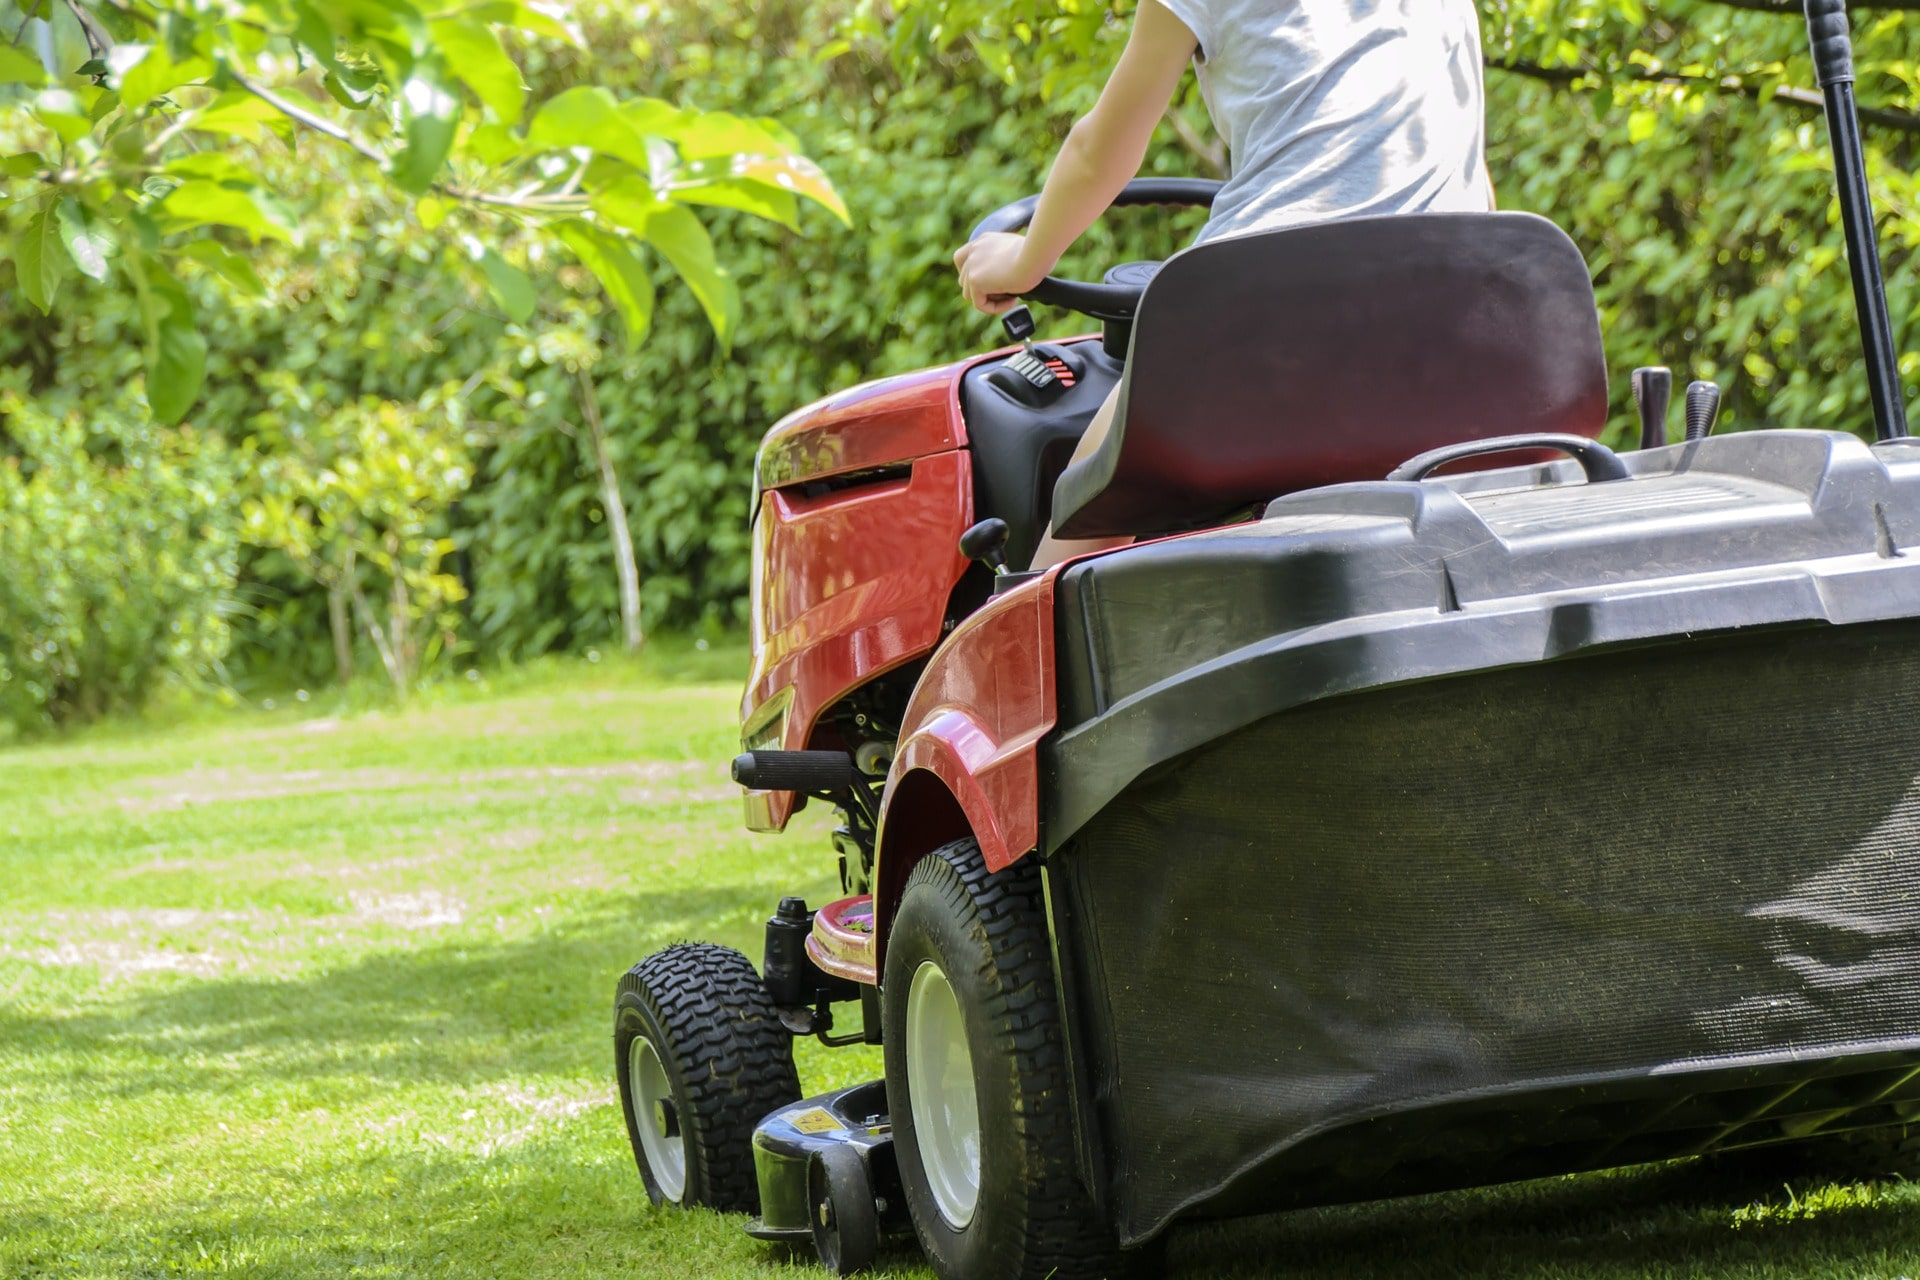 A ride on mower with a grass box.